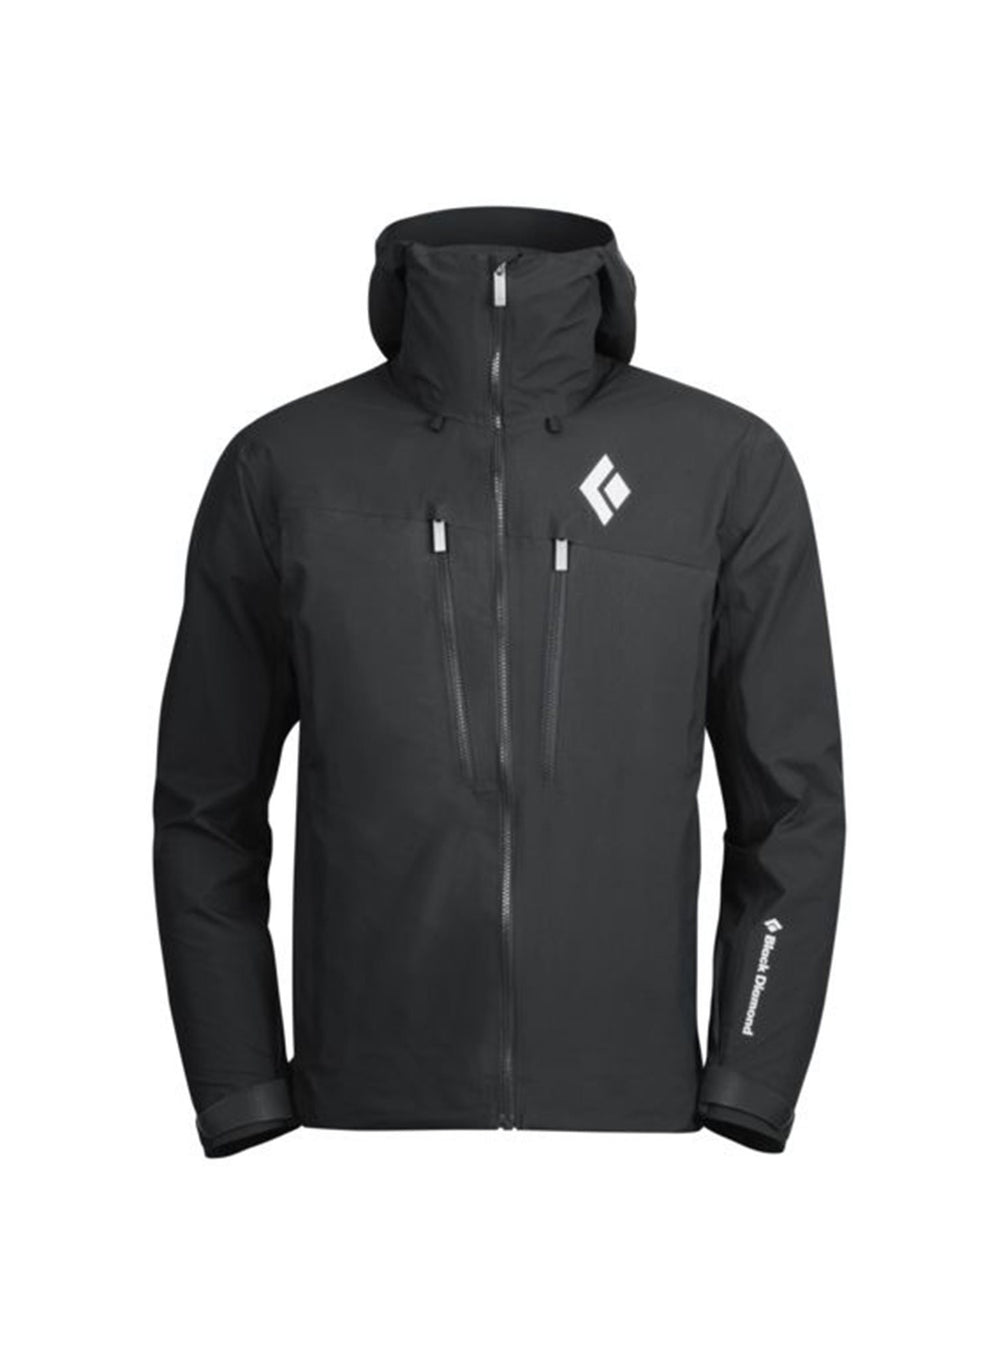 Black Diamond Convergent Shell - Men's